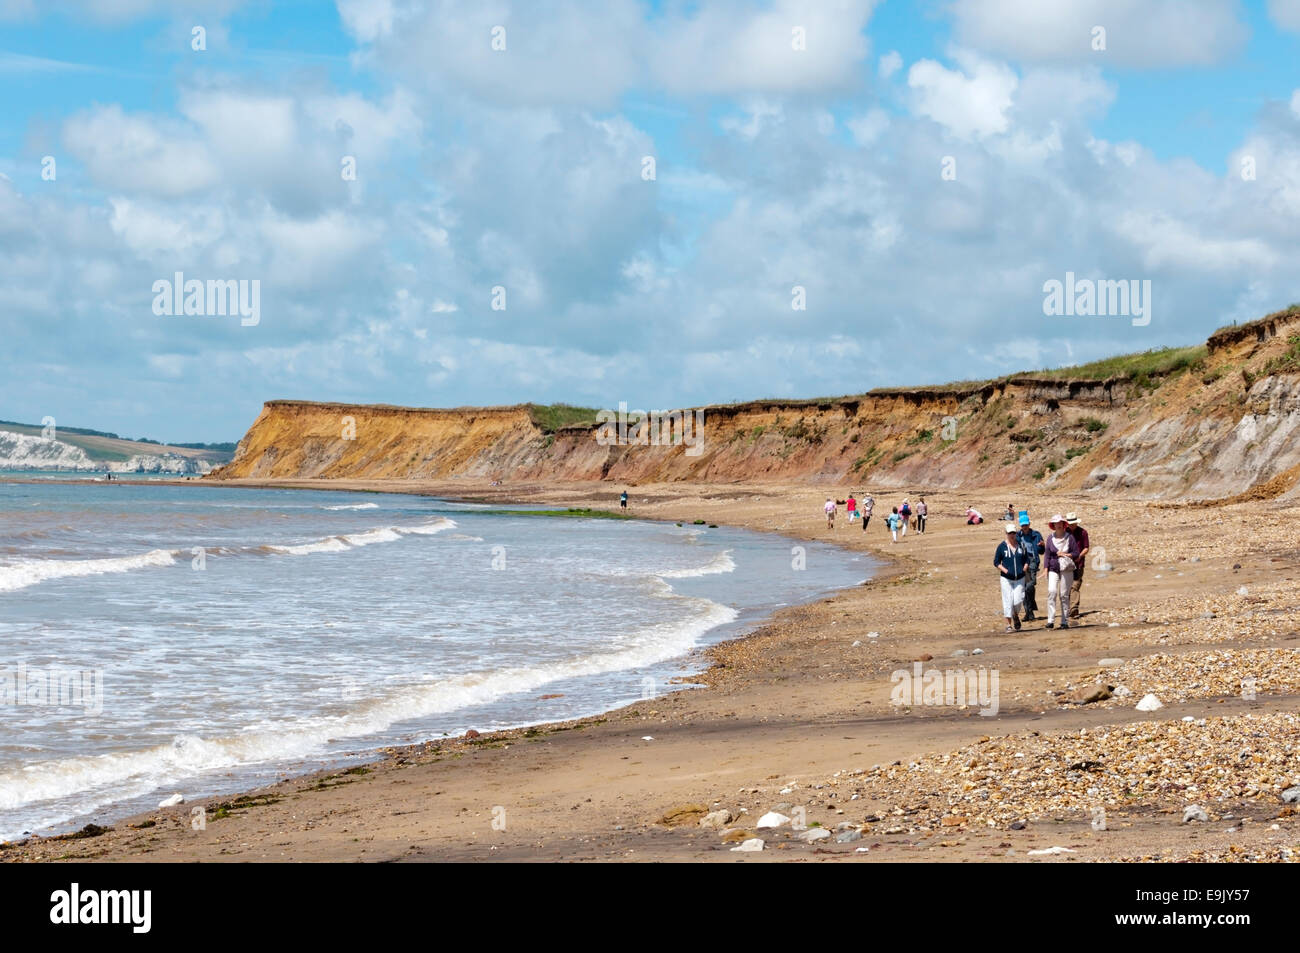 Holidaymakers walking along the beach at Brook Bay on the south coast of the Isle of Wight. - Stock Image